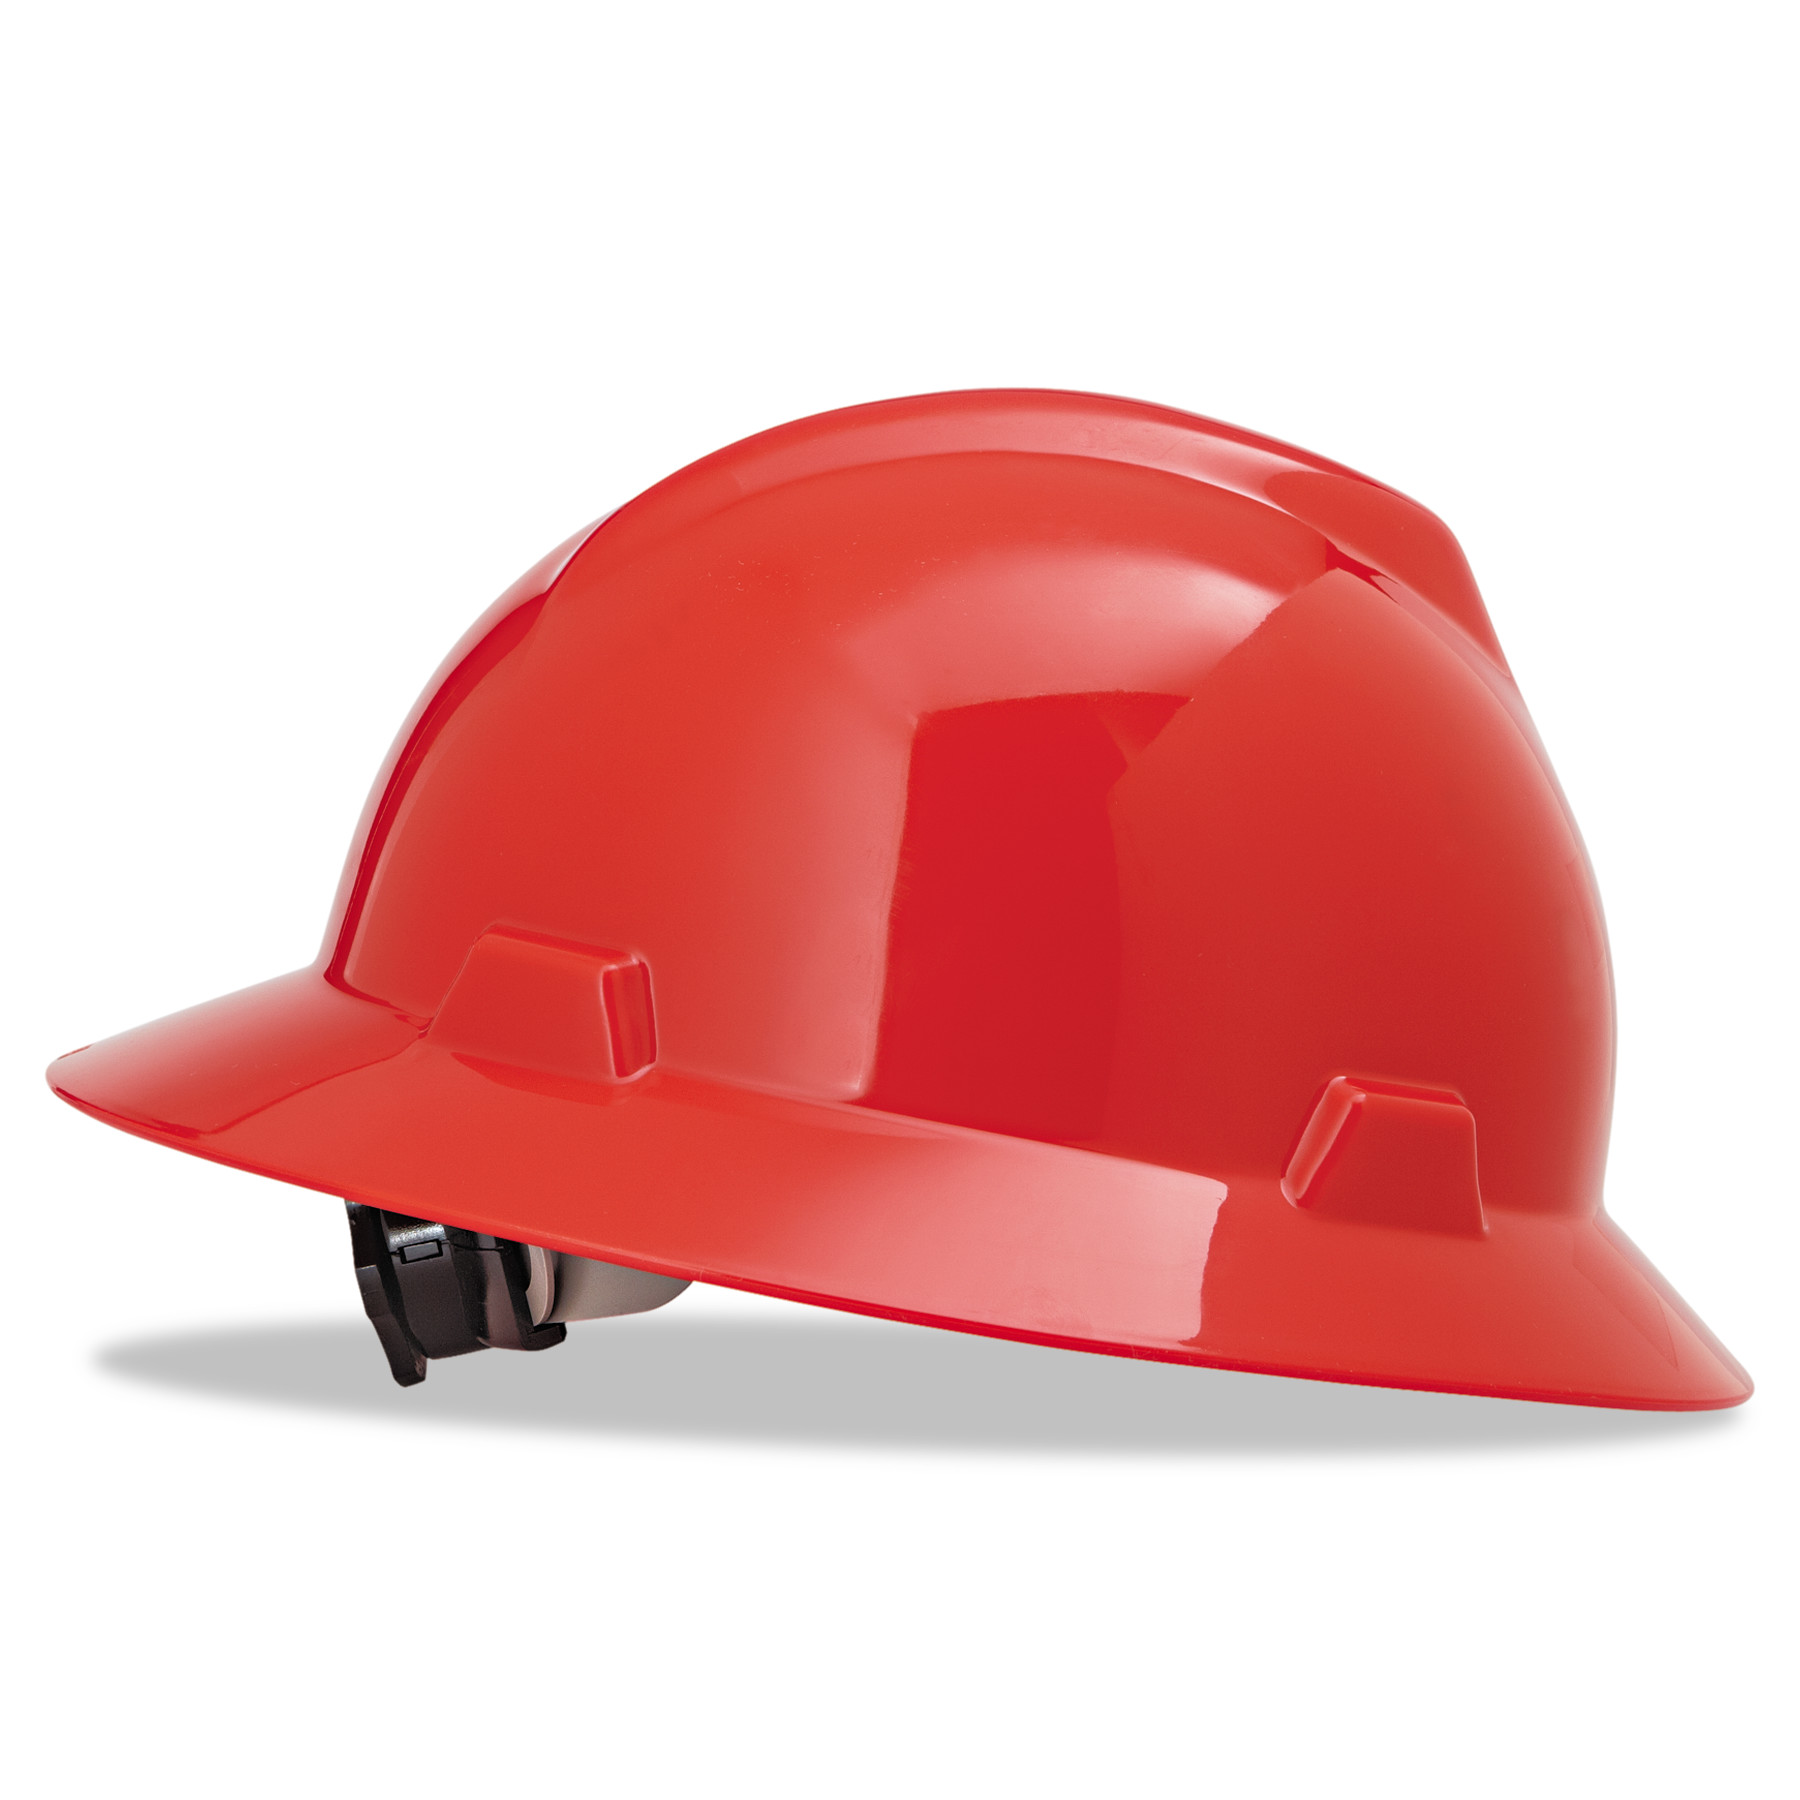 MSA V-Gard Full-Brim Hard Hats, Ratchet Suspension, Size 6 1 2 8, Red by SAFETY WORKS